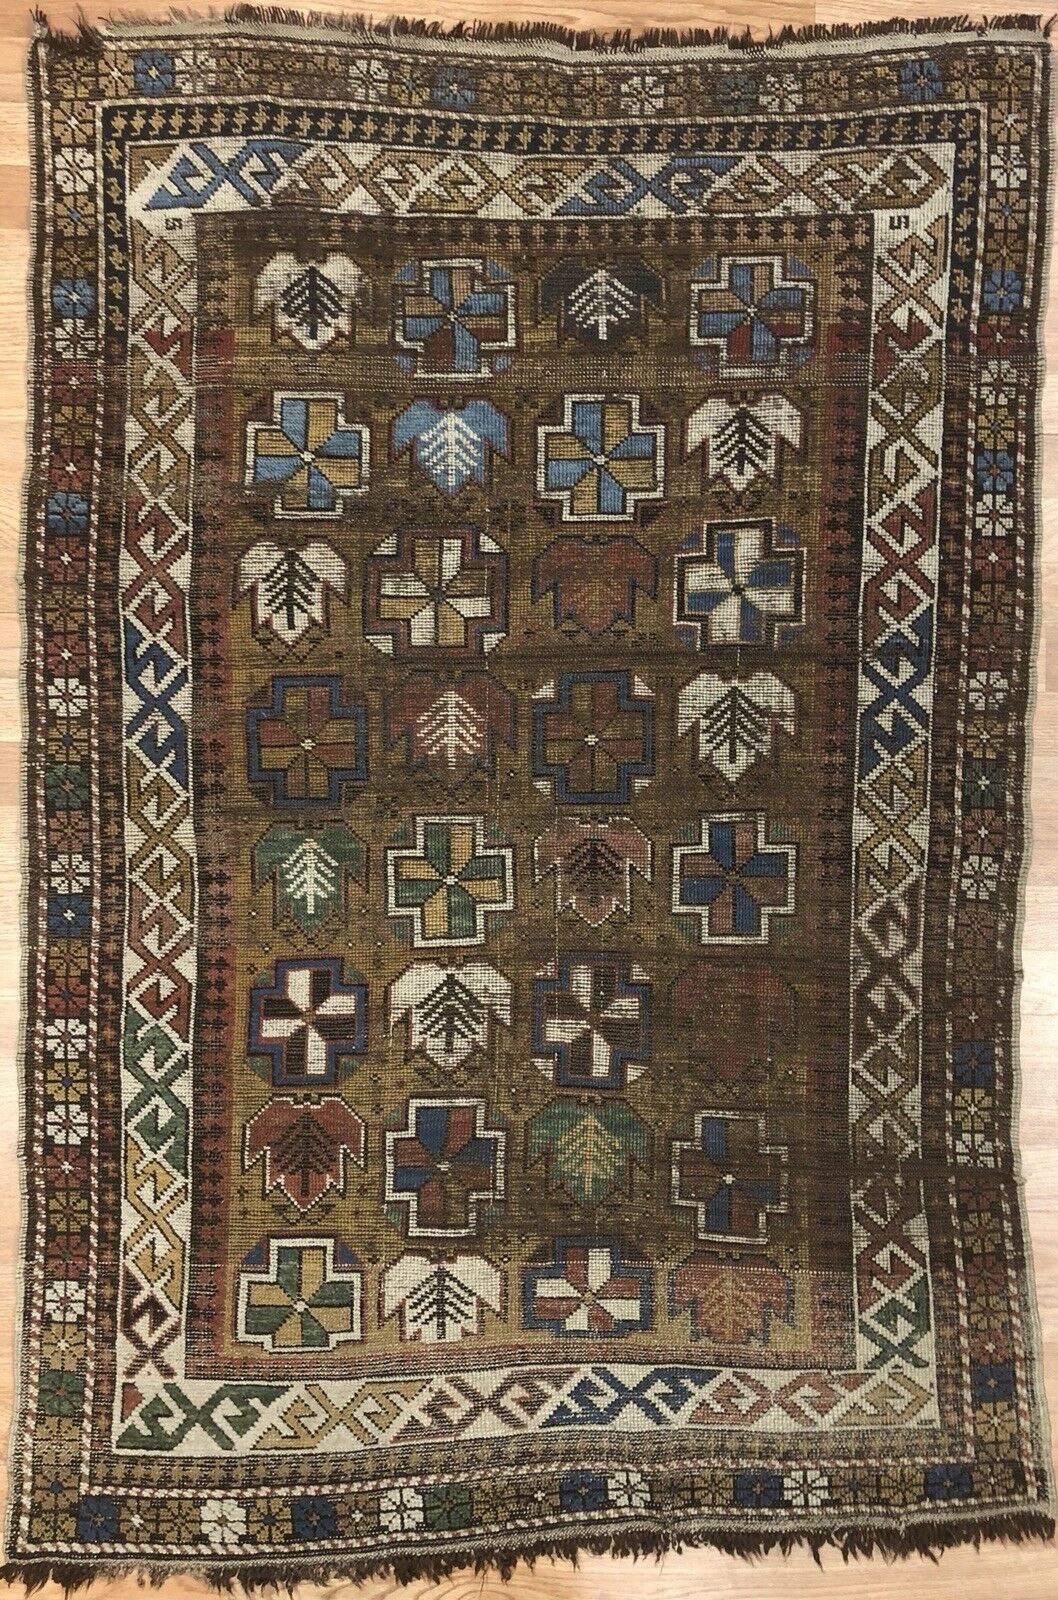 Classic Caucasian Carpet - 1980s Antique Tribal Rug - 3'3